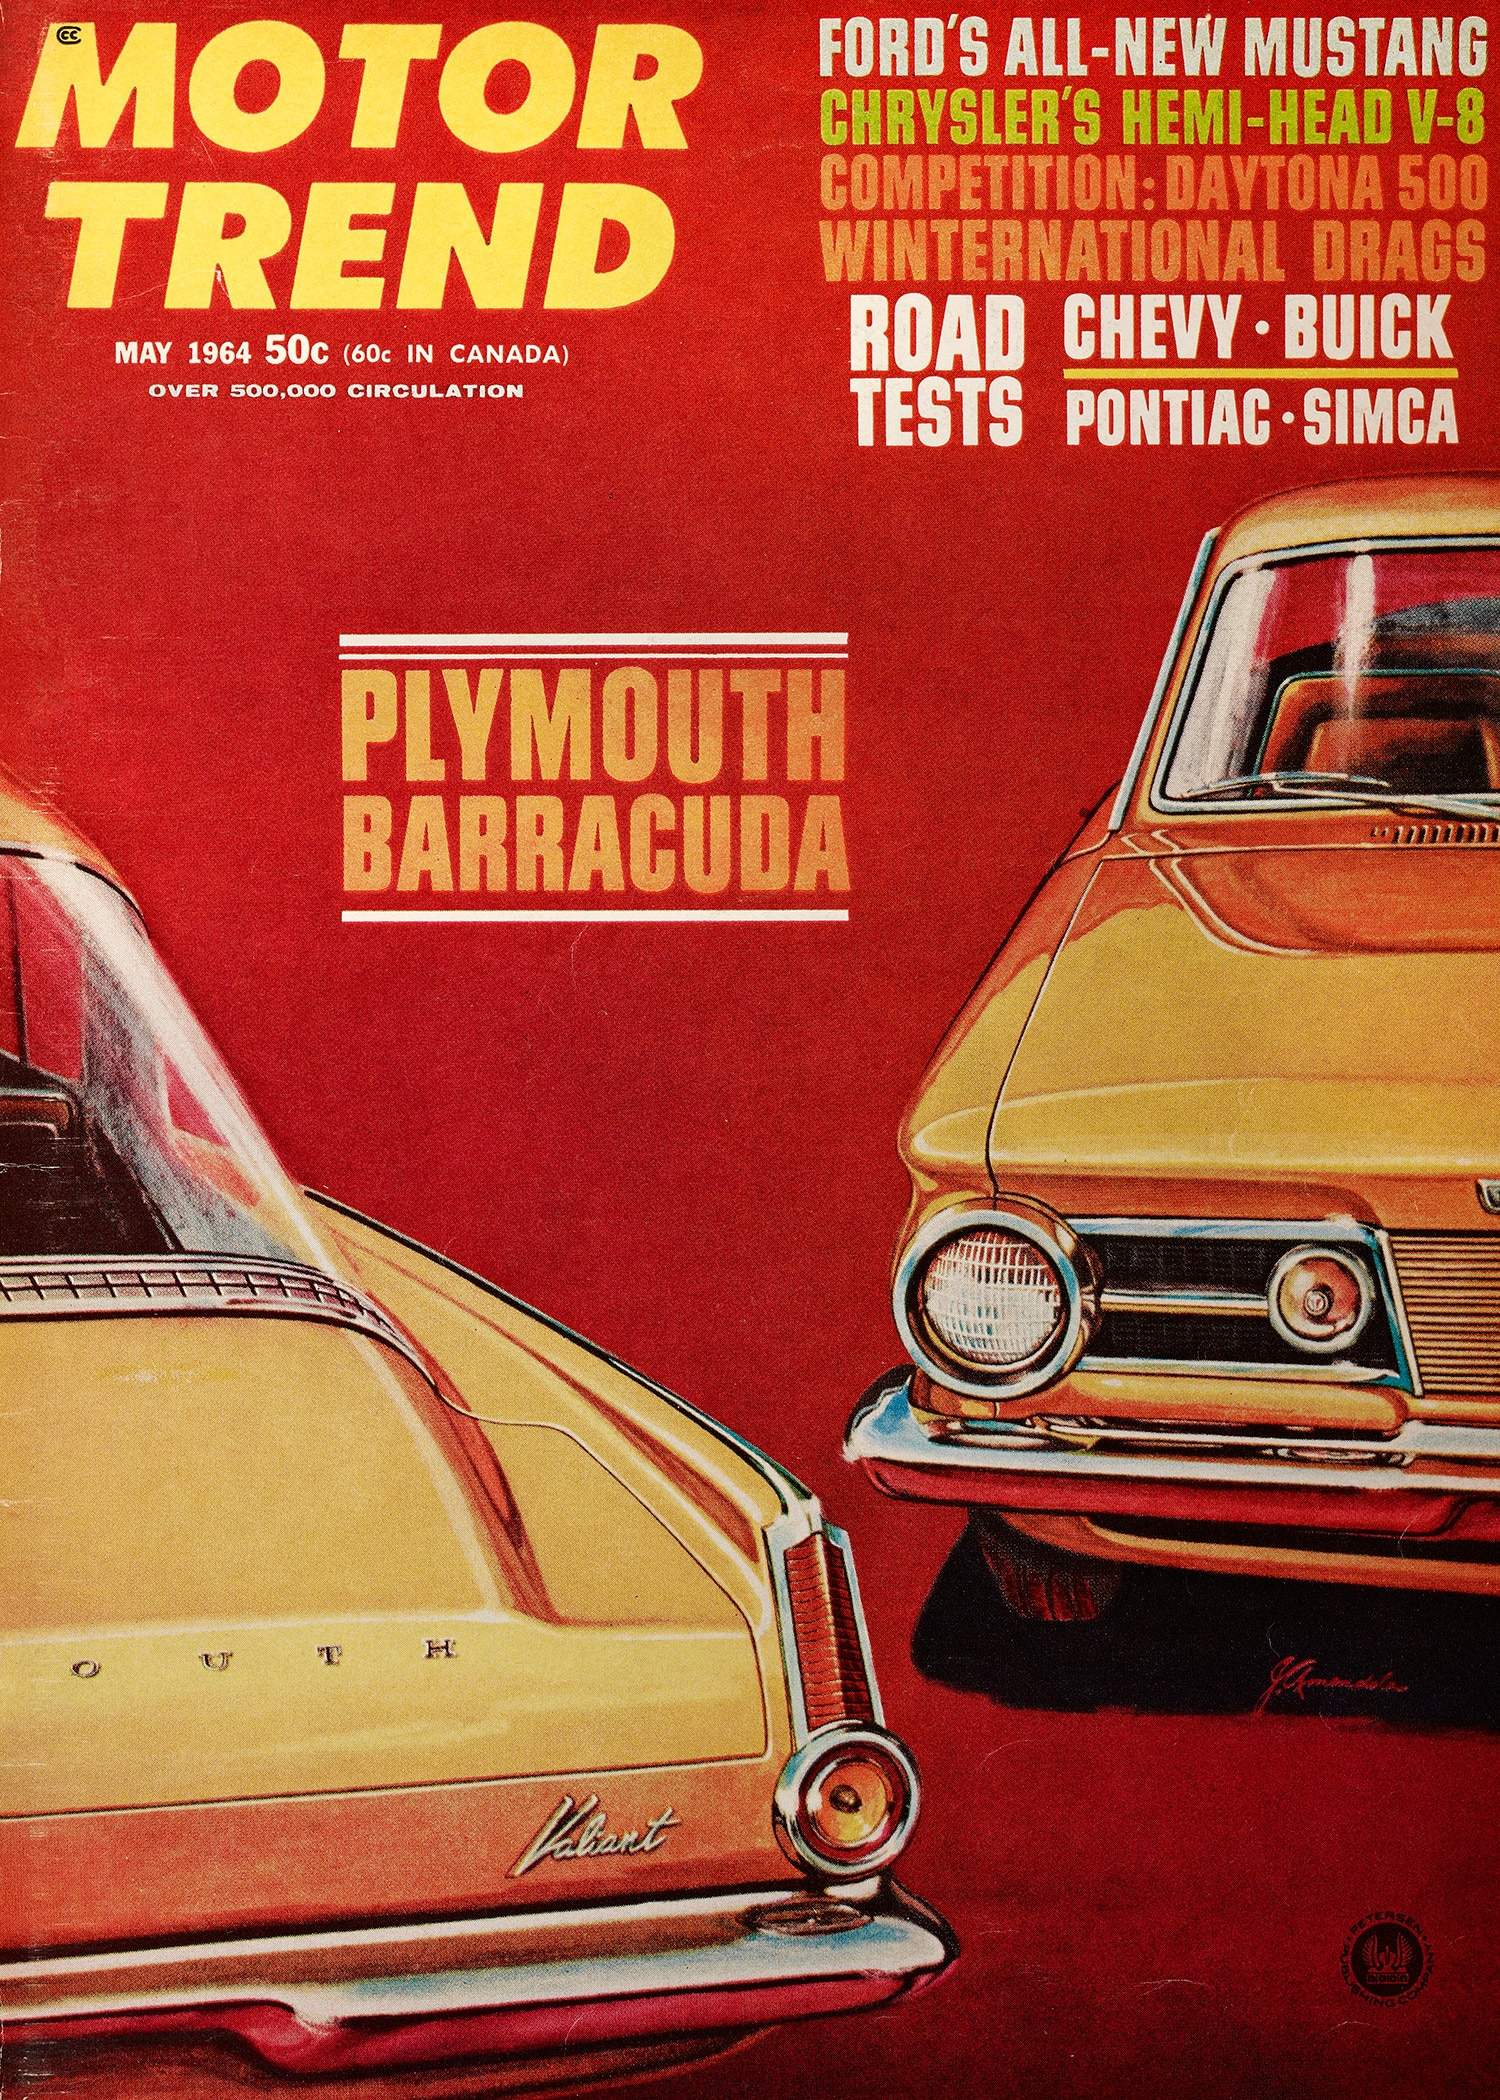 May 1964 Motor Trend Mustang Road Test Red Cover